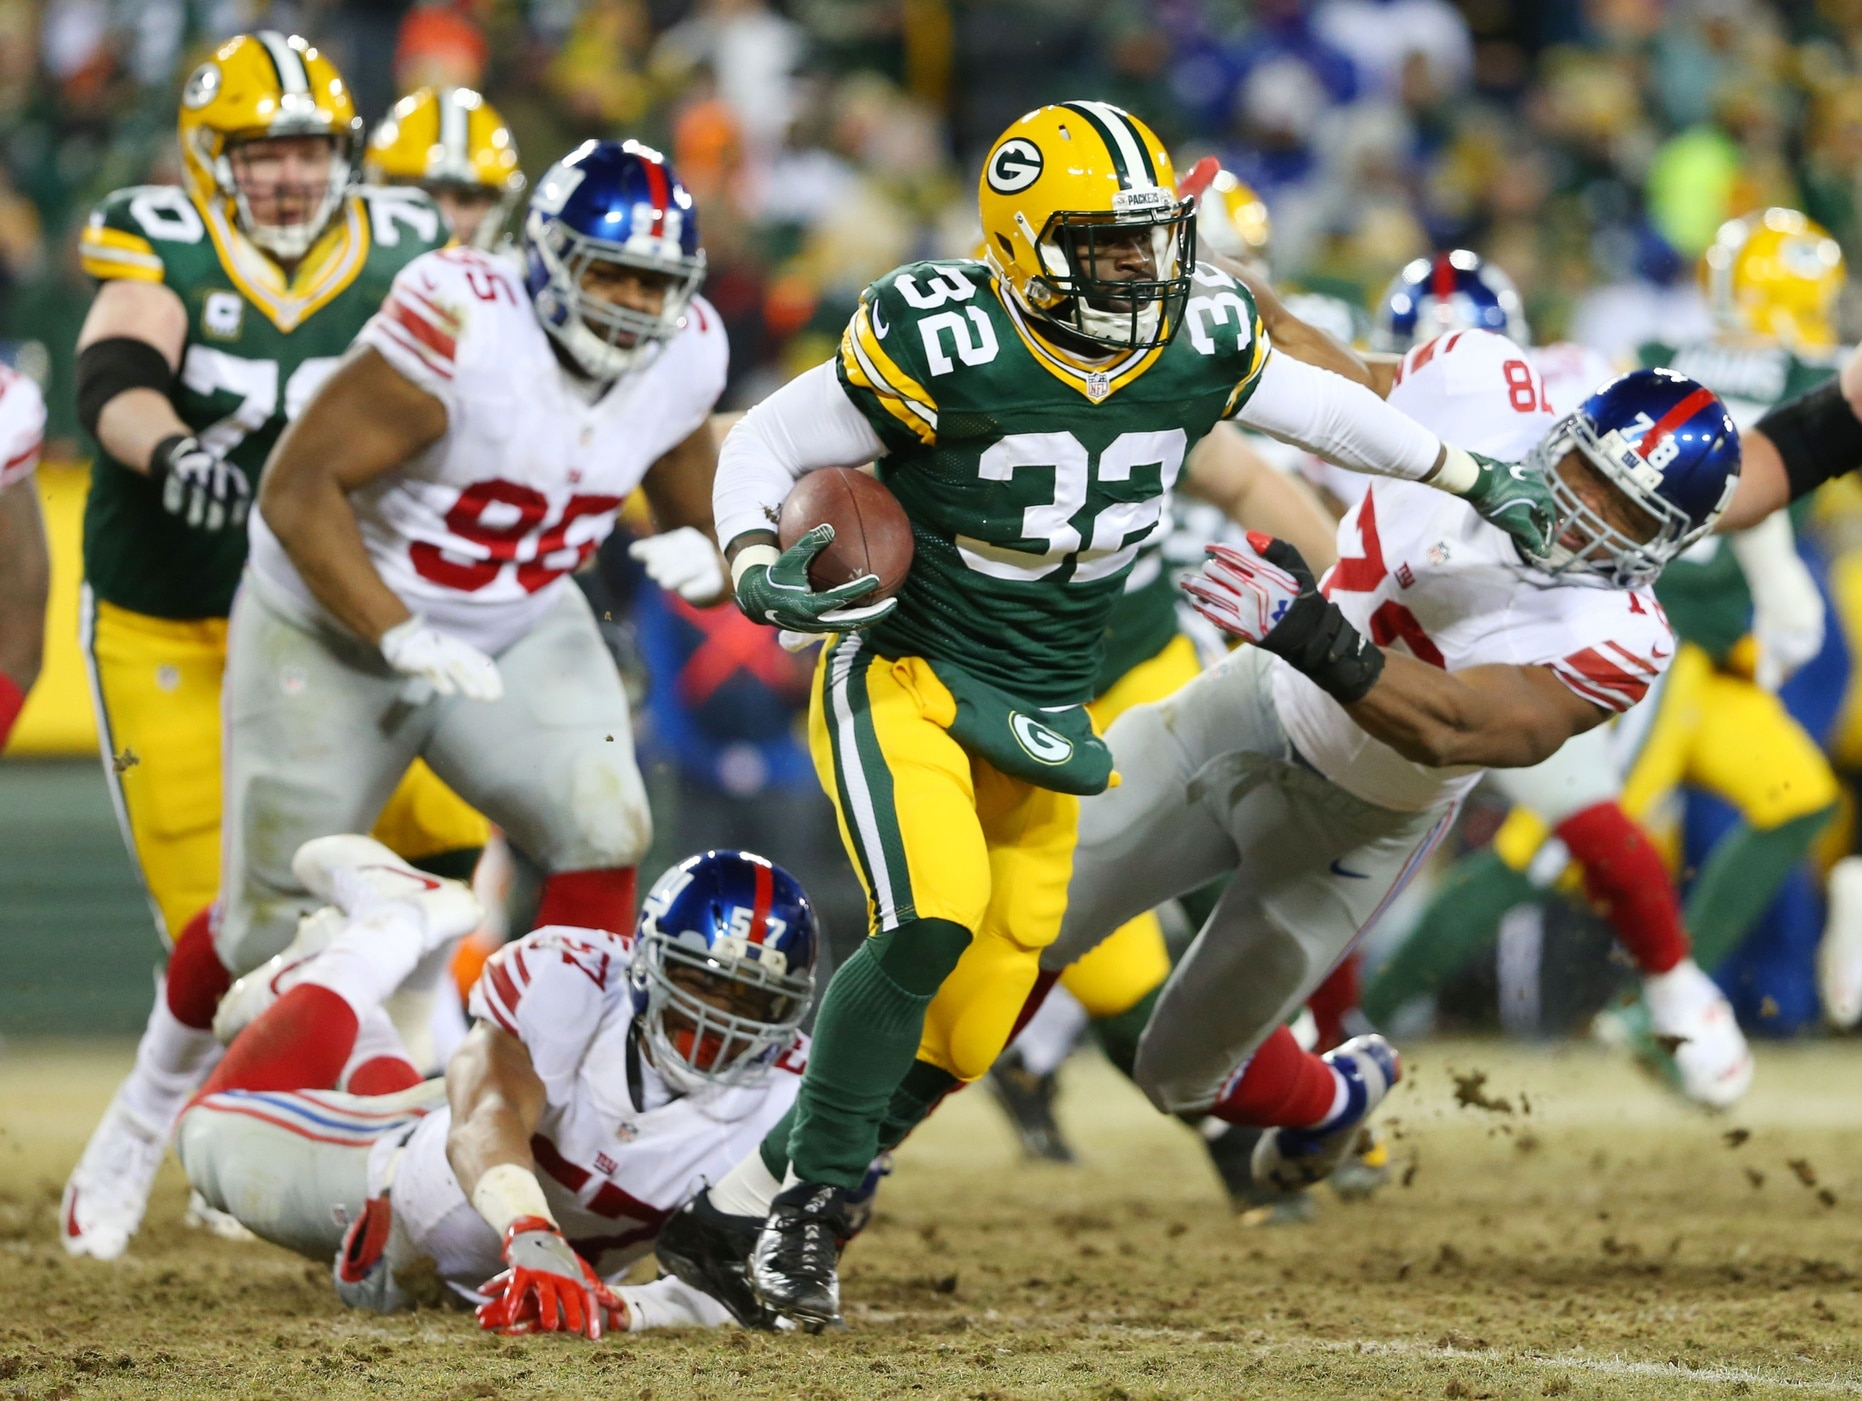 Jan 8, 2017; Green Bay, WI, USA; Green Bay Packers running back Christine Michael (32) stiff arms New York Giants defensive end Romeo Okwara (78) during the third quarter in the NFC Wild Card playoff football game at Lambea